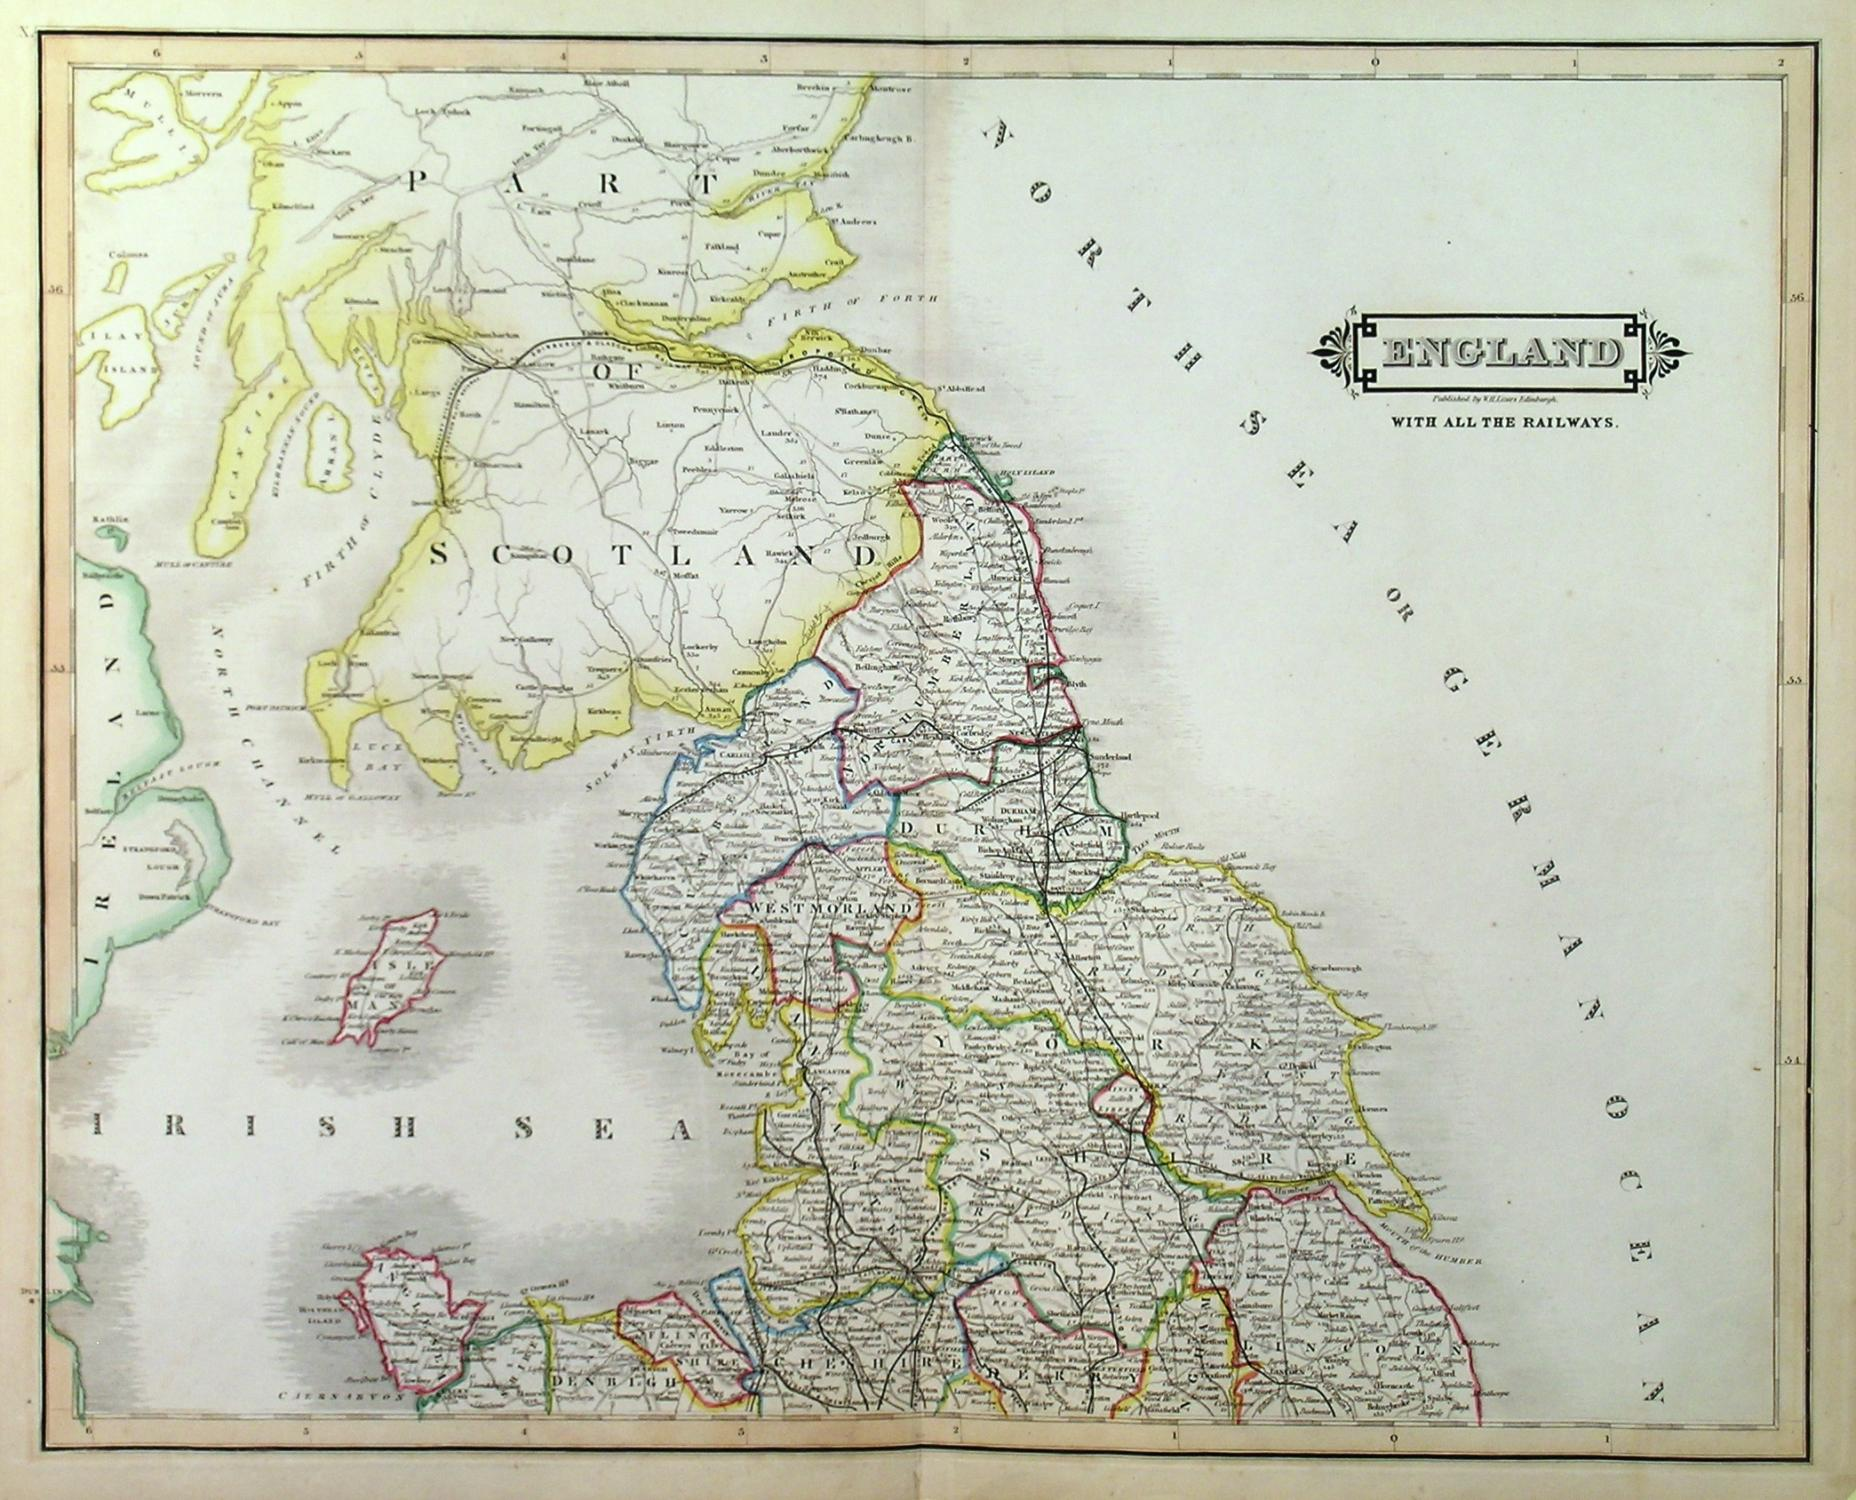 Large Detailed Map Of England.New Road Map Of England With All The Lines